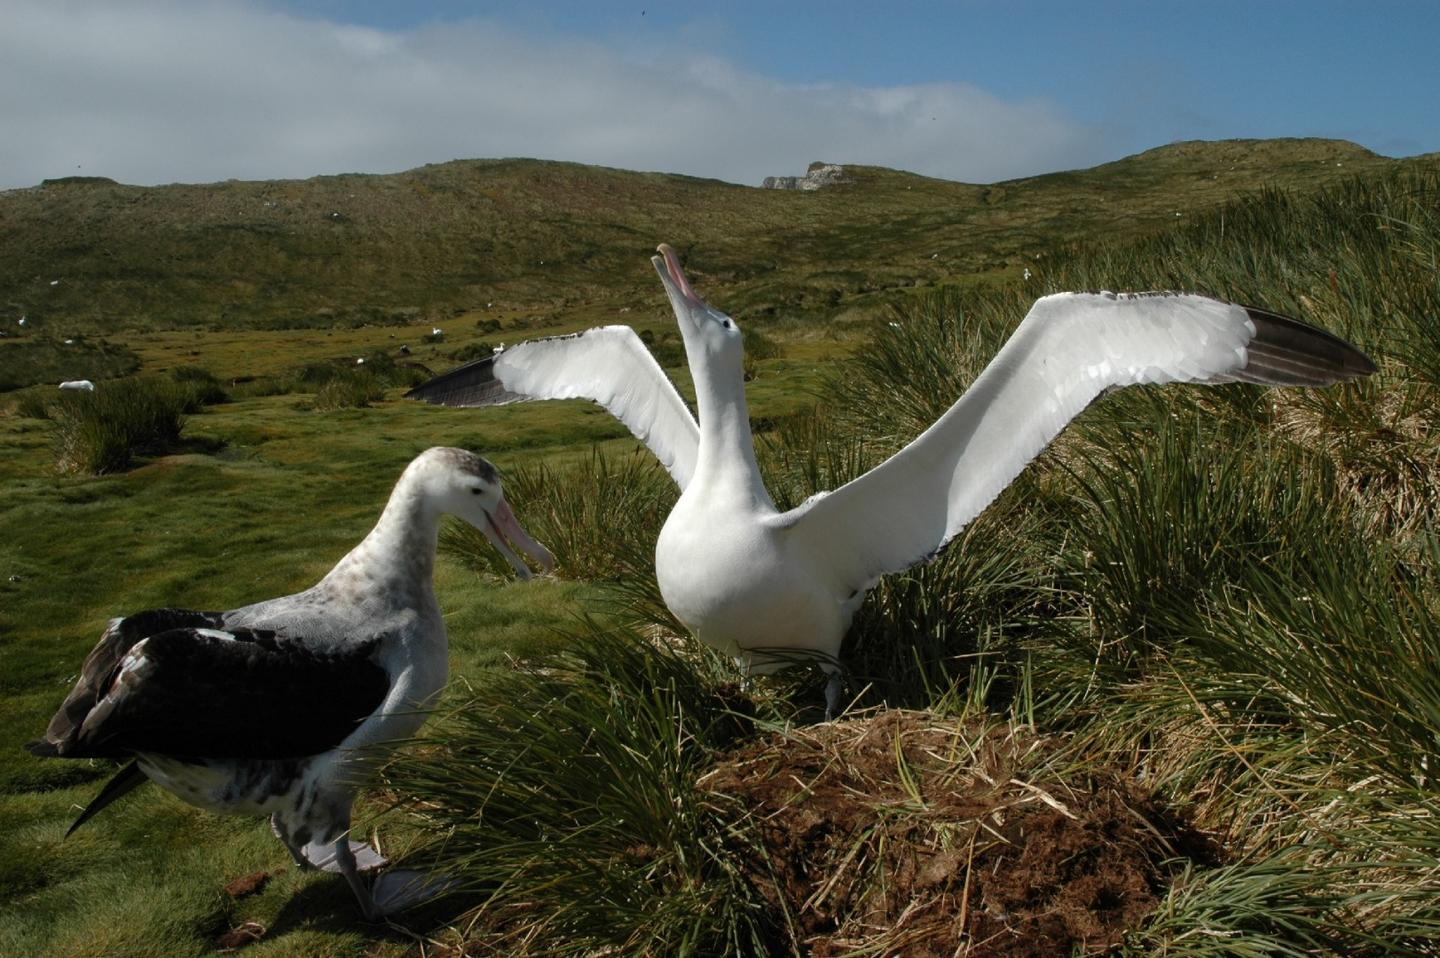 Wandering albatrosses on South Georgia Island in the South Atlantic